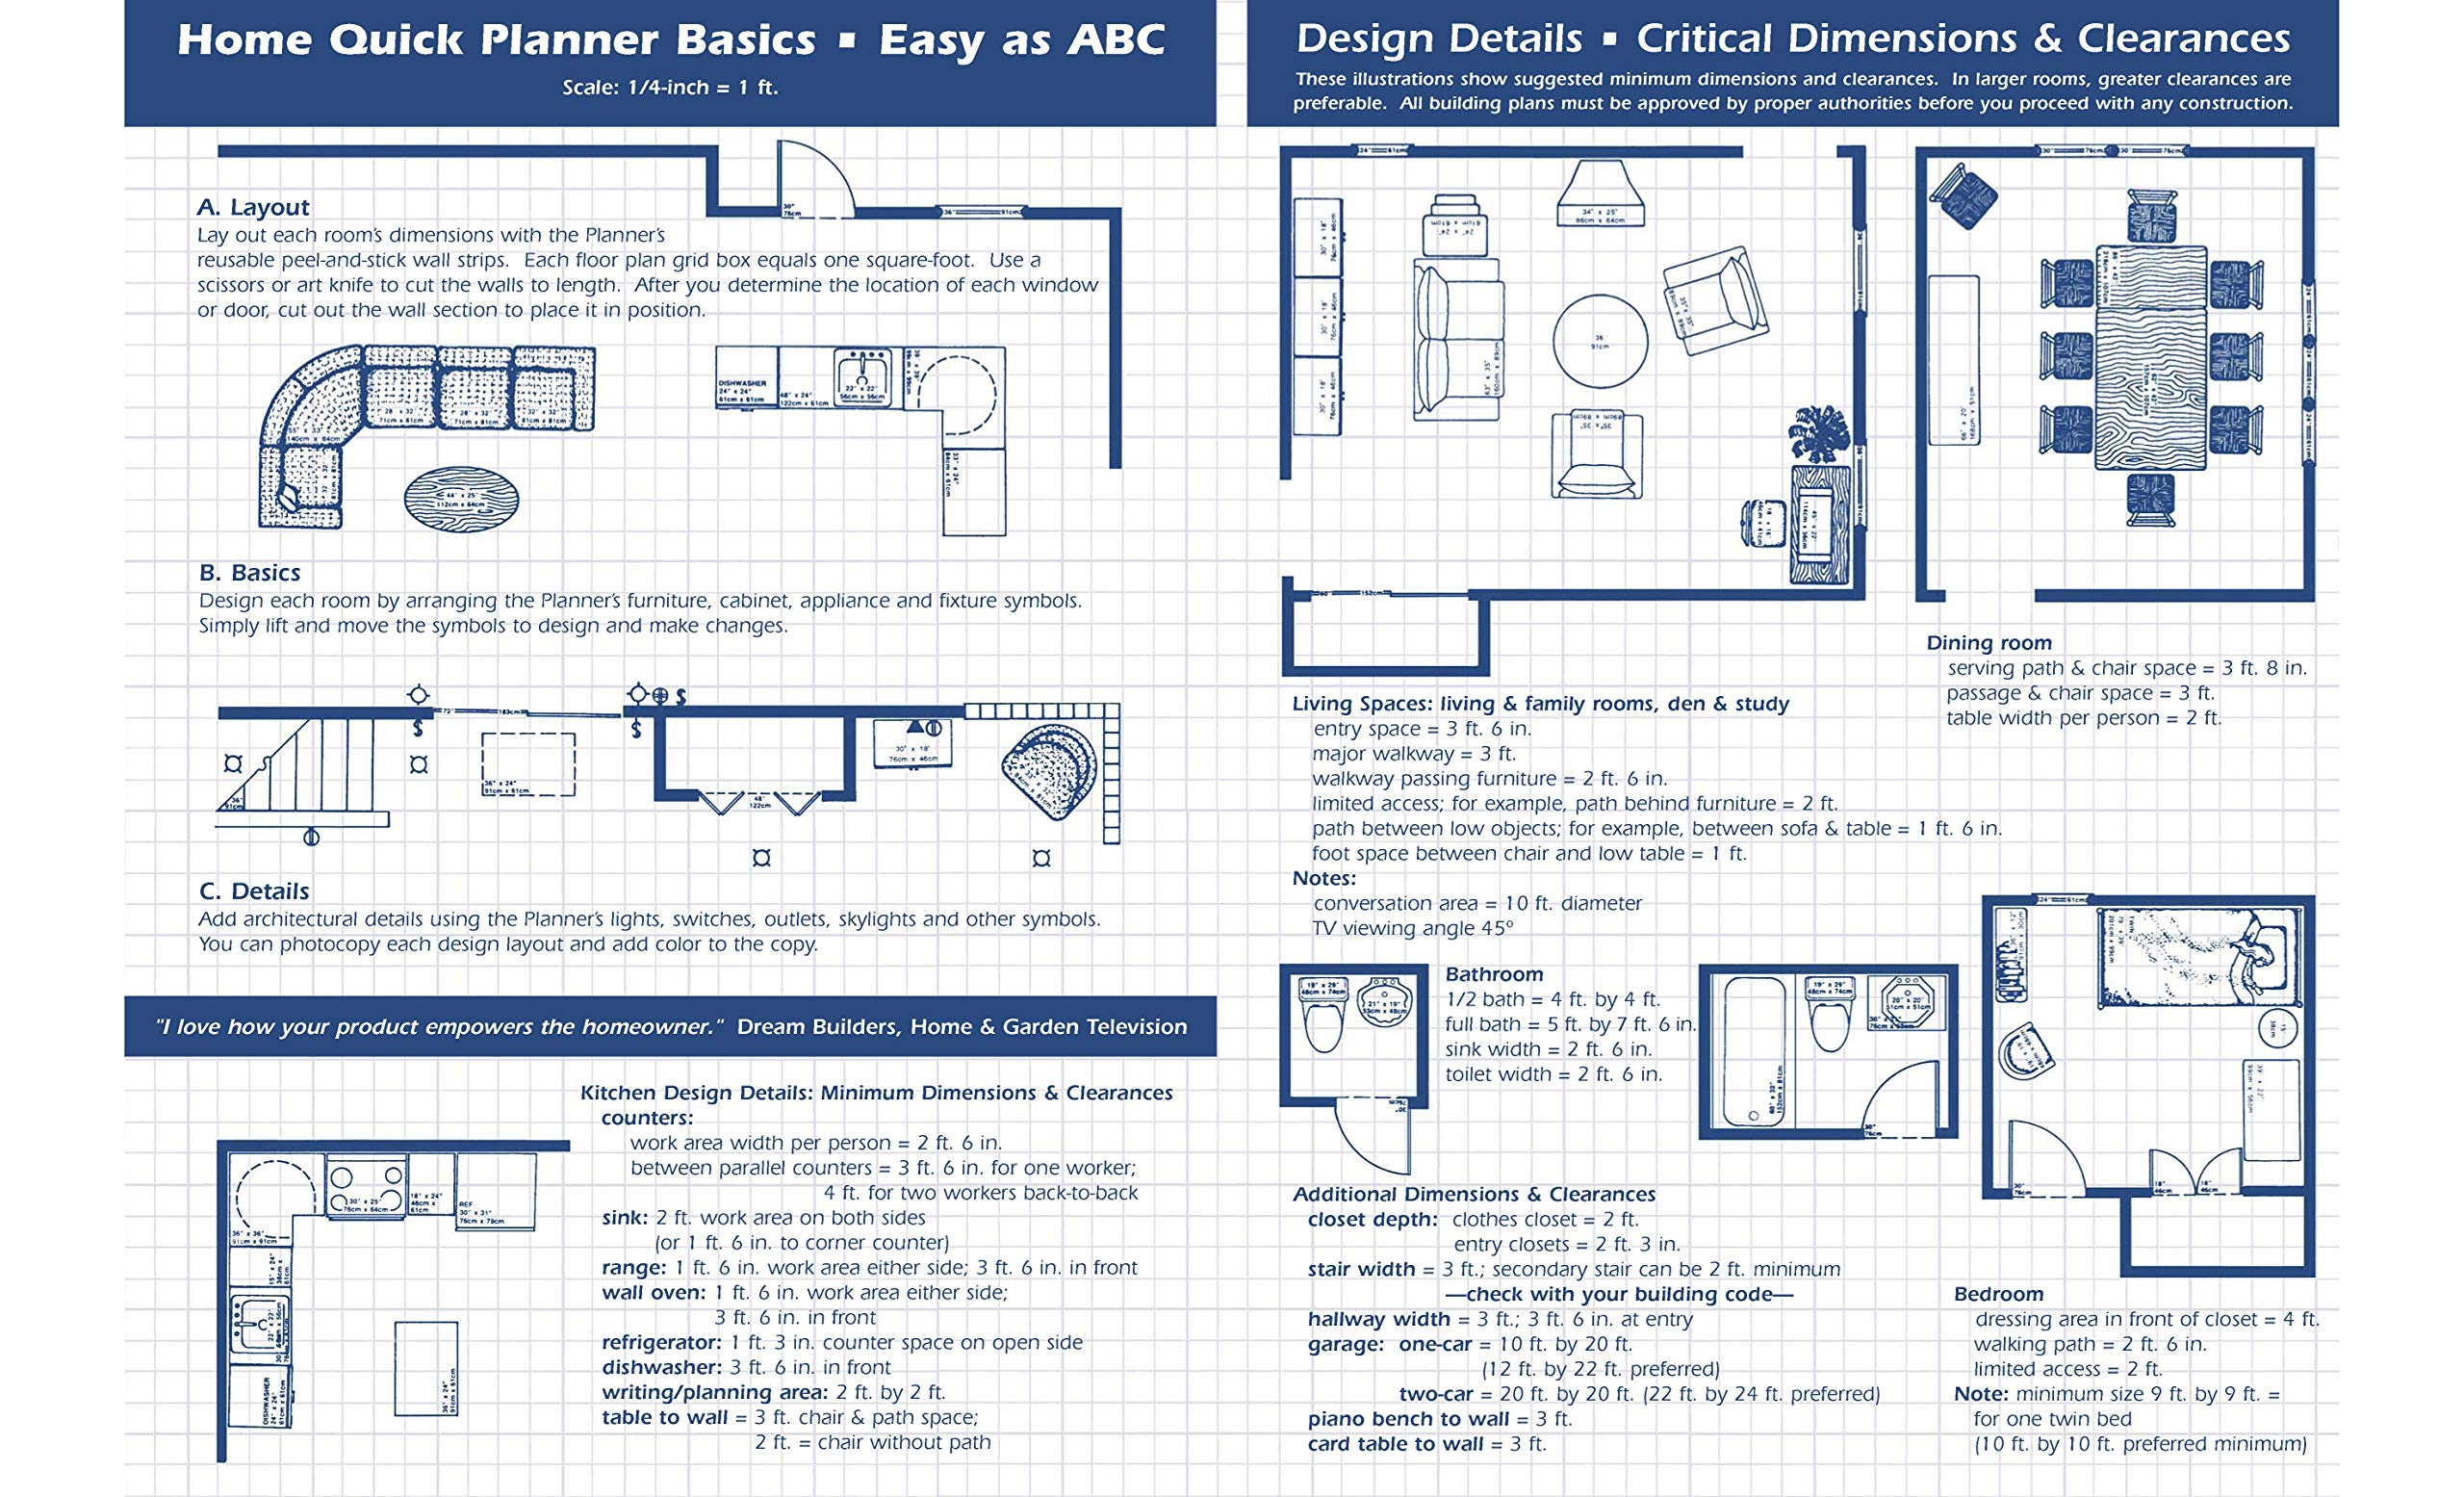 Home Quick Planner: Reusable, l & Stick Furniture ... on floor plans garage, floor plan for transportation company, electrical plan for warehouse, building plans for warehouse, floor plans retail,